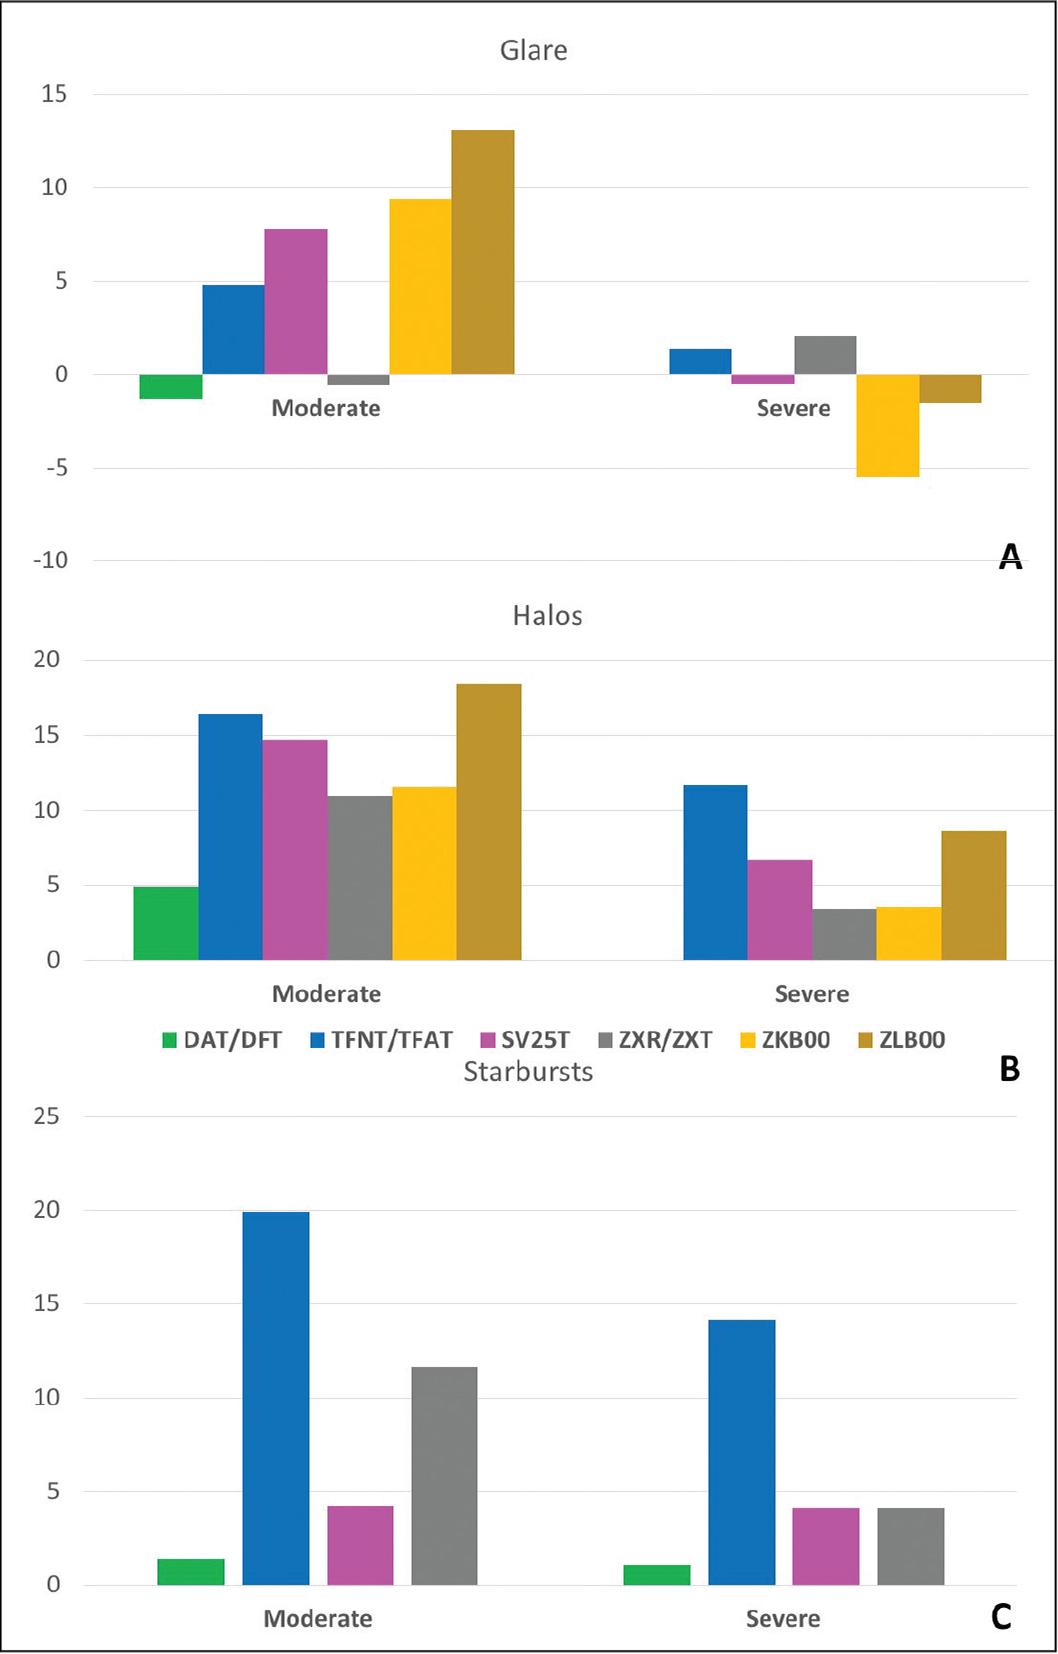 Patient-reported outcomes data for (A) moderate and severe glare, (B) halos, and (C) starbursts. Data reported are the difference in percentage of patients reporting each level of visual symptom between the control monofocal lens and the multifocal lens. Negative numbers indicate that more control patients reported that level of visual symptom, positive numbers indicate that more multifocal patients reported that level of visual symptom. The ZKB00/ZLB00 (Johnson & Johnson Vision) study did not report values for starbursts or for mild visual symptom severity. The DFT/DAT (Vivity), SV25T, and TFNT/TFAT (PanOptix) lenses are manufactured by Alcon Laboratories, Inc, and the ZXR/ZTX (Symfony), ZKB00, and ZLB00 lenses are manufactured by Johnson & Johnson Vision.